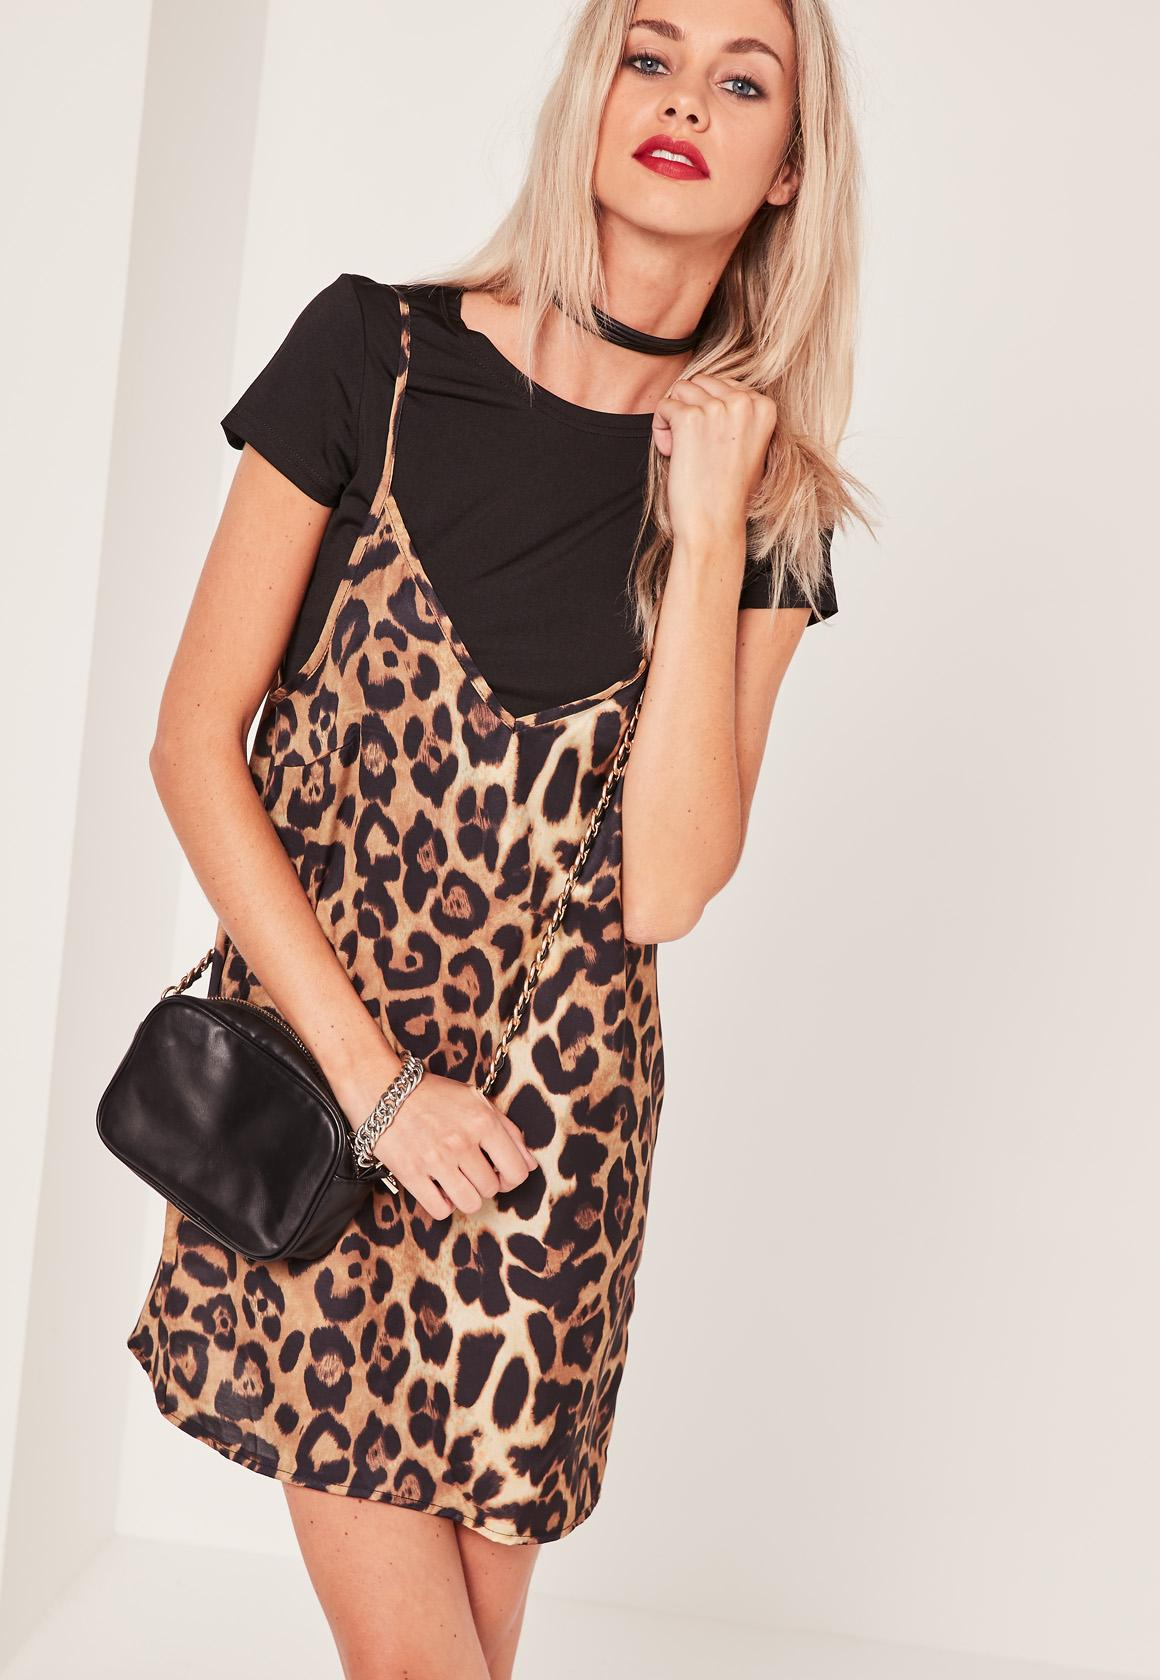 Leopard Print 2 in 1 Dress Black